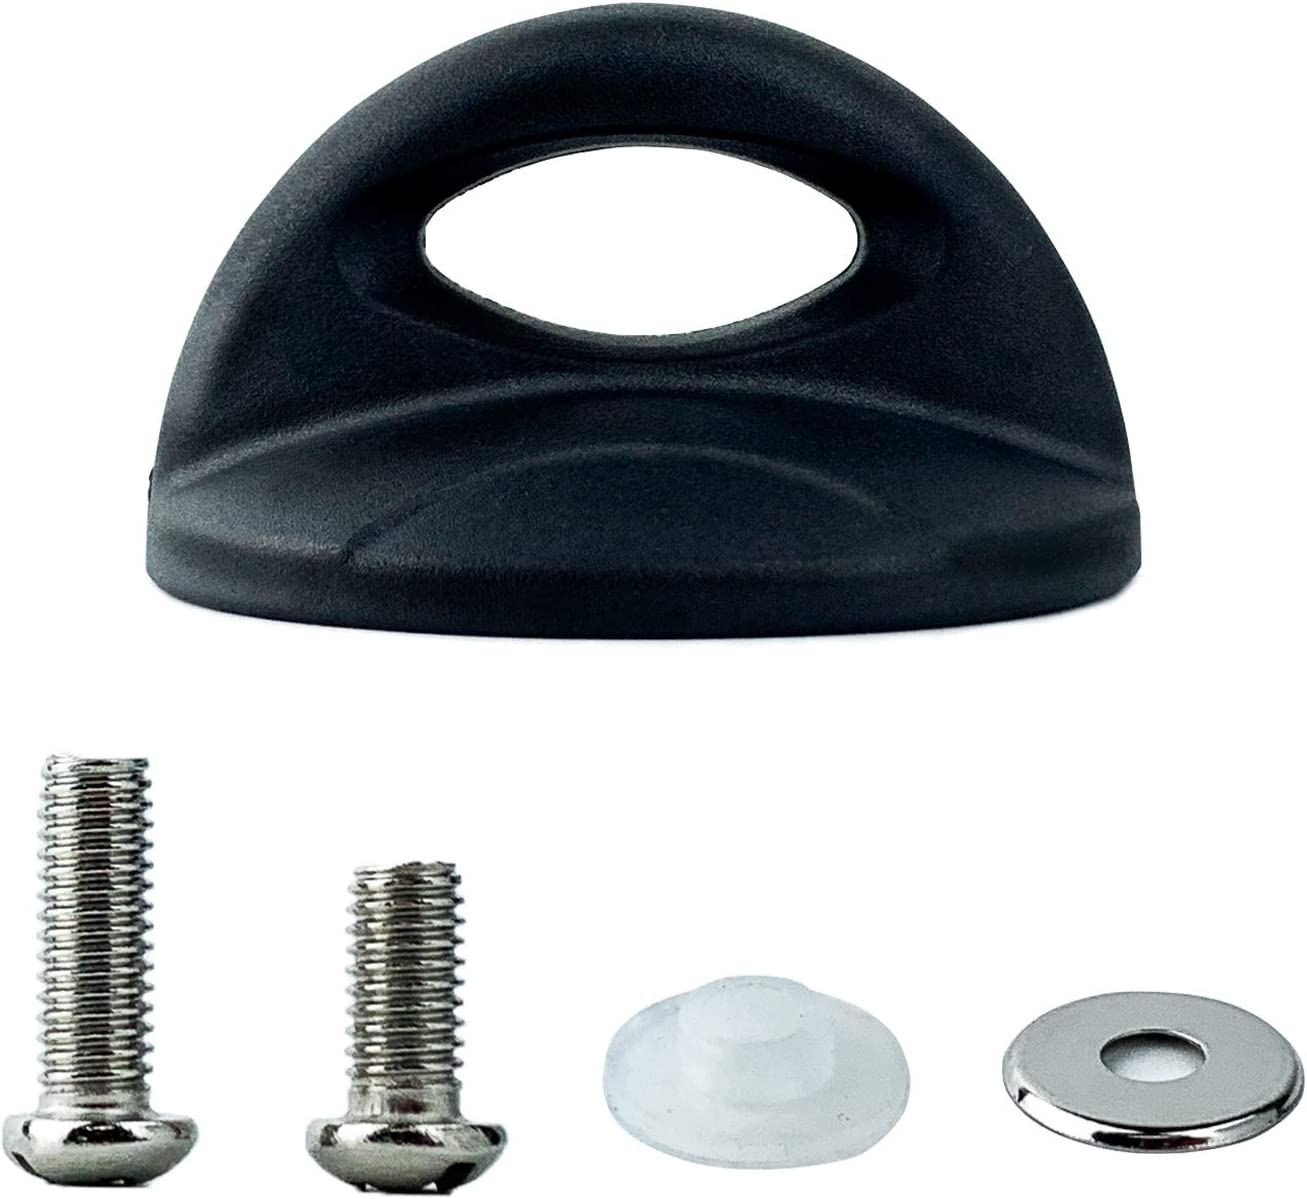 Pot Lid Top Replacement Knob Sector Style. Kitchen Cookware Universal Replacement Pan Lid Holding Handles. (1, 2.5 inch)